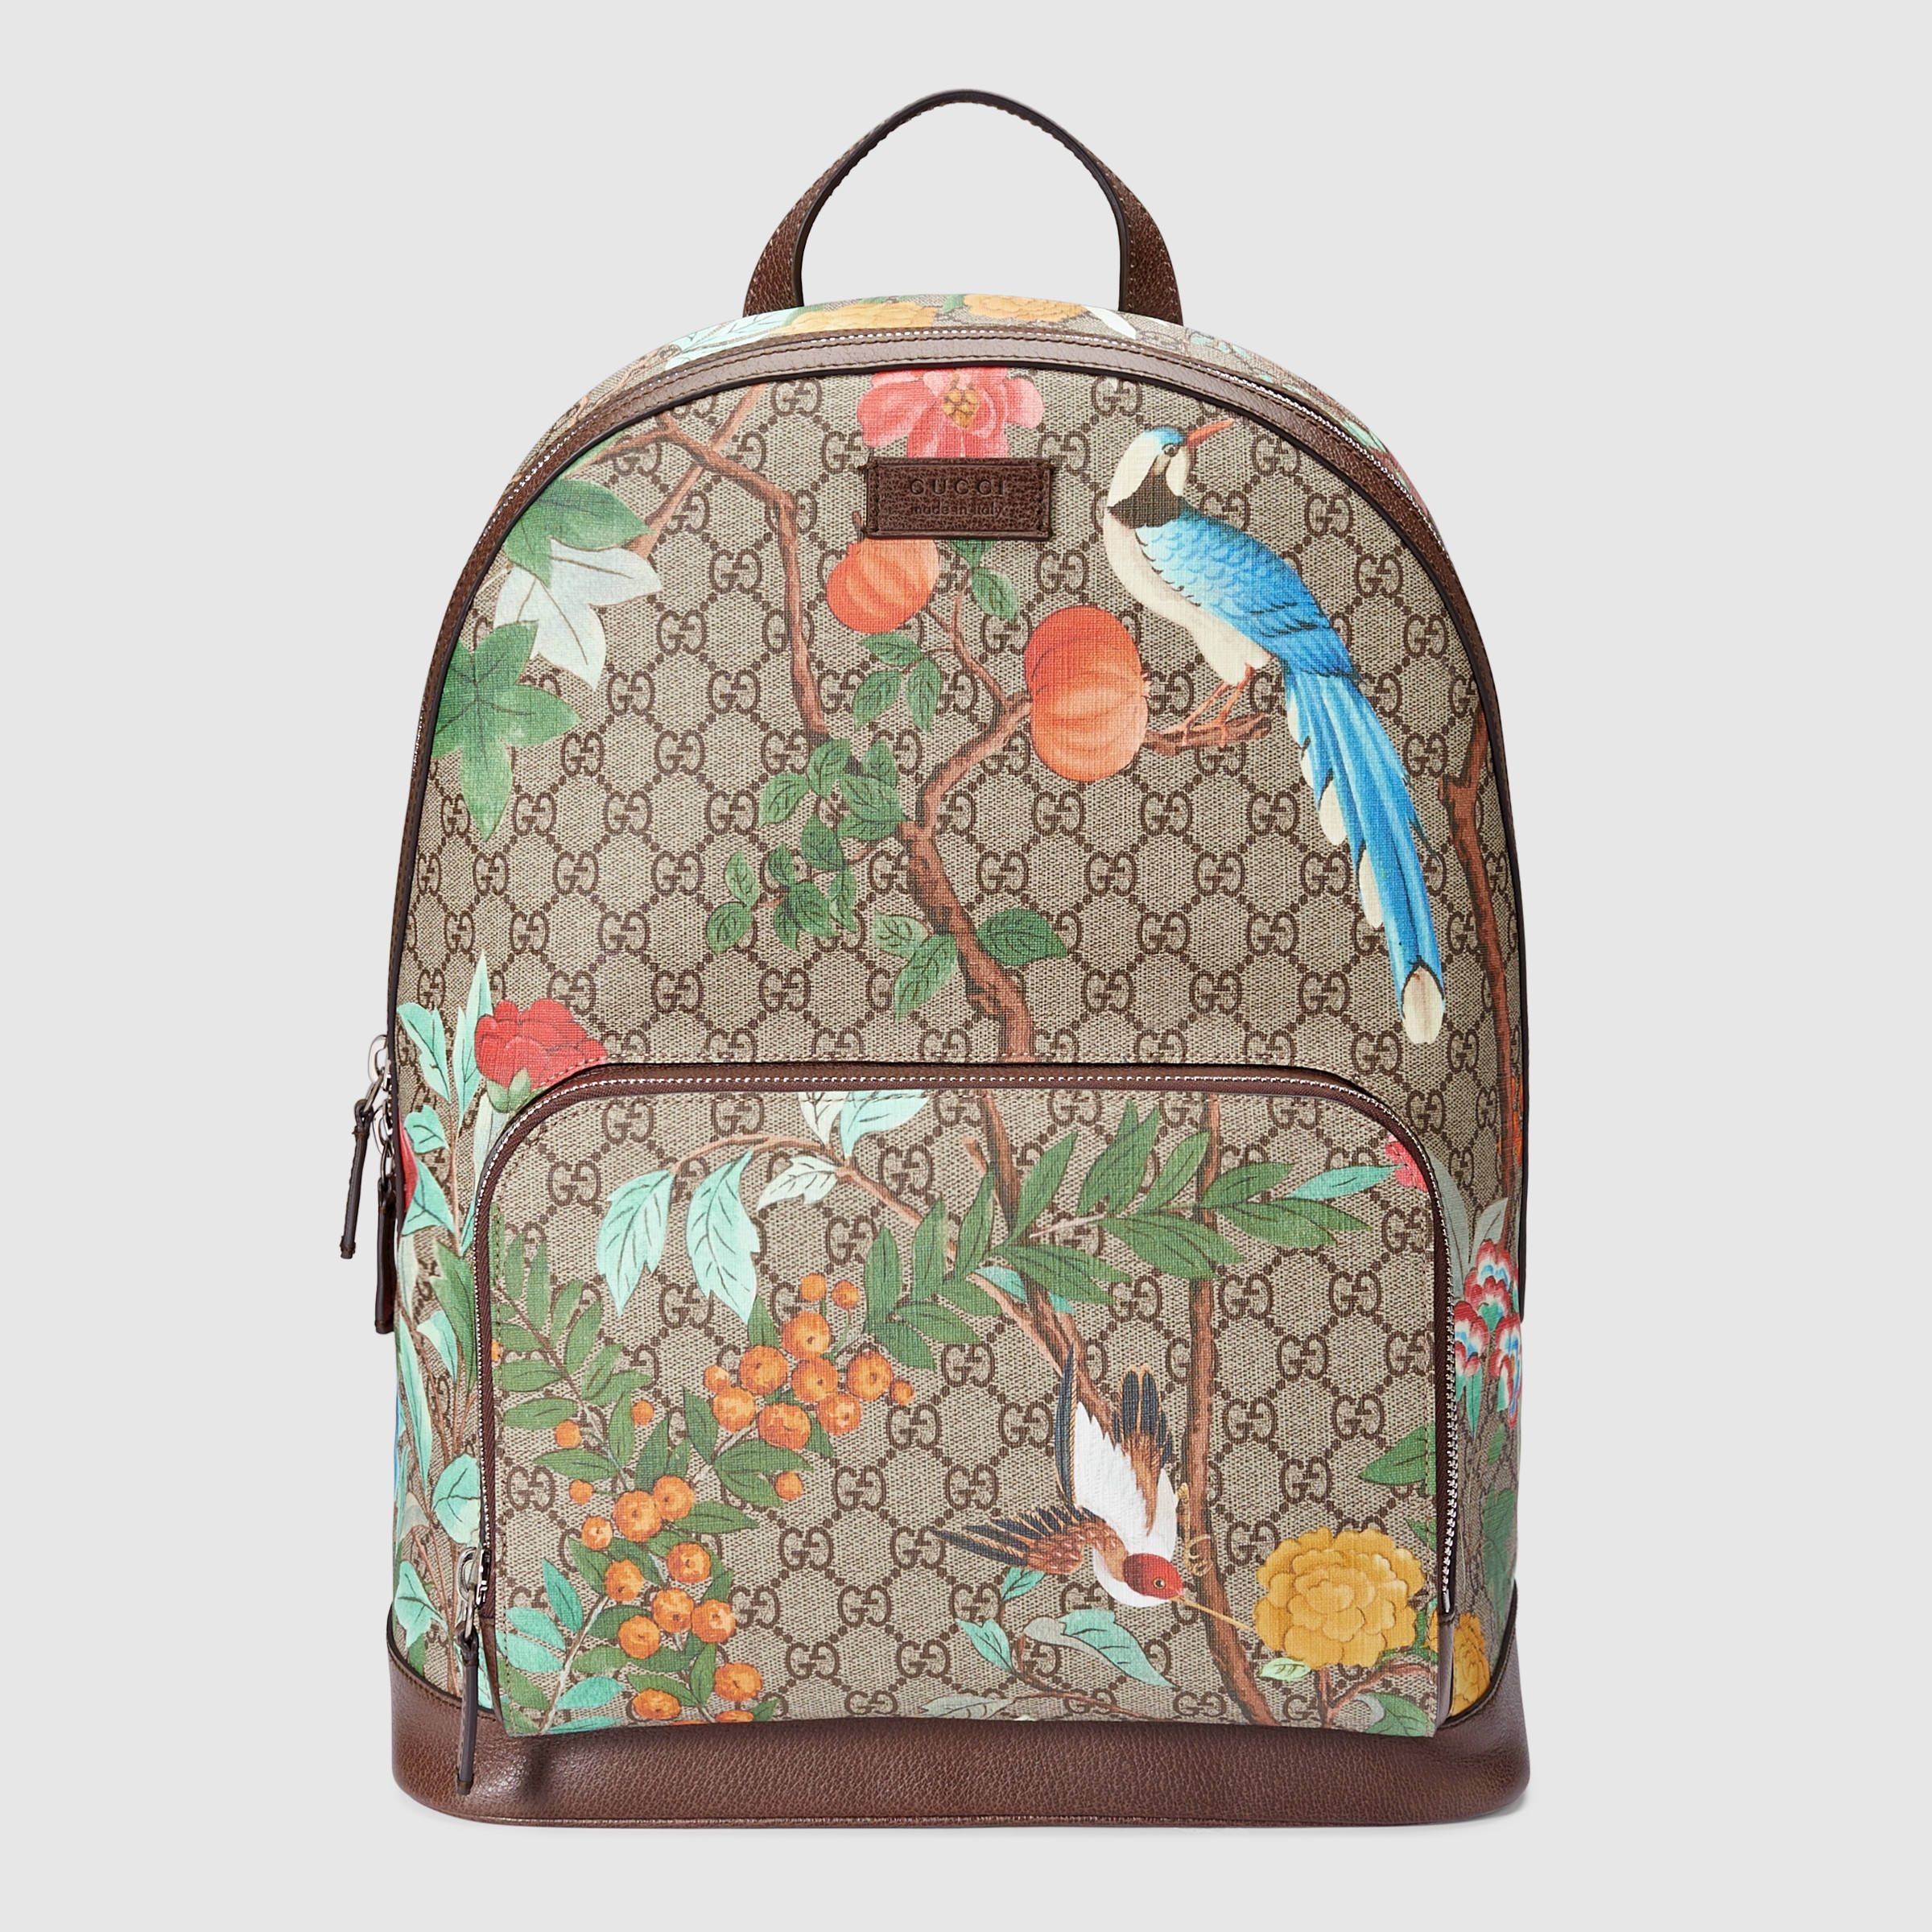 16bacb65048 Gucci Men - Gucci Tian GG Supreme backpack - 428027K0LCN8685 ...